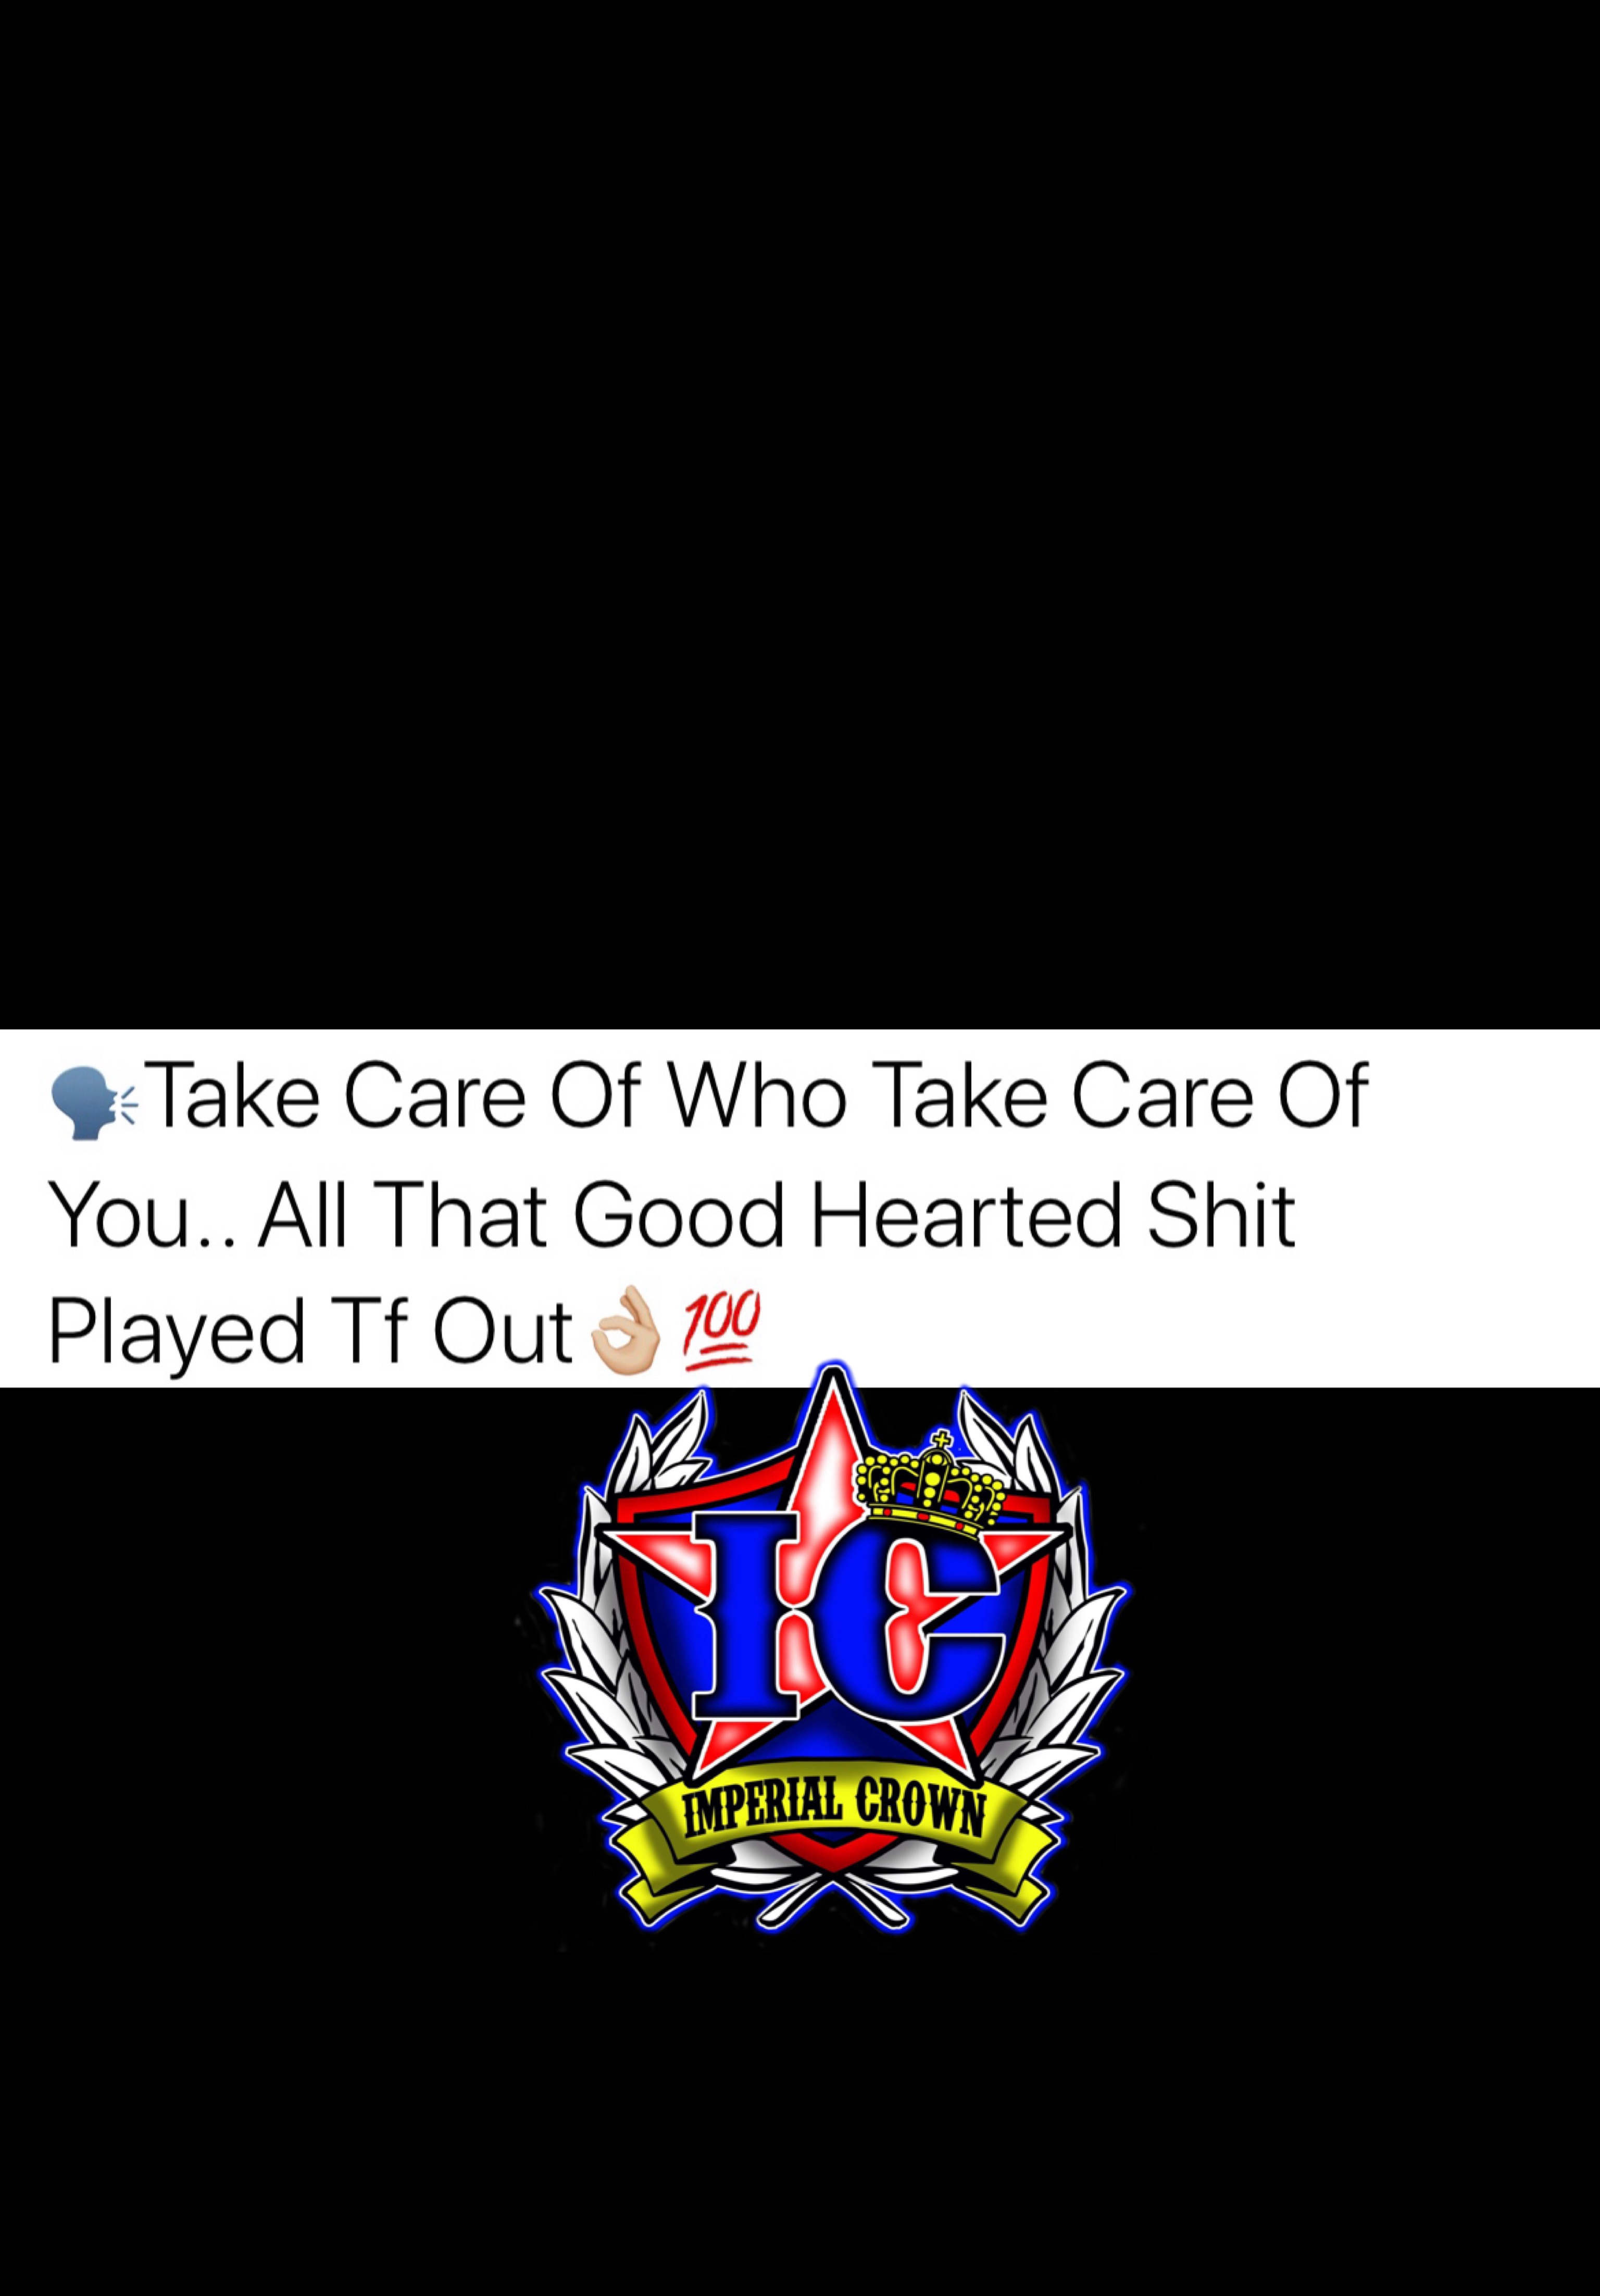 Take care of who take care of you